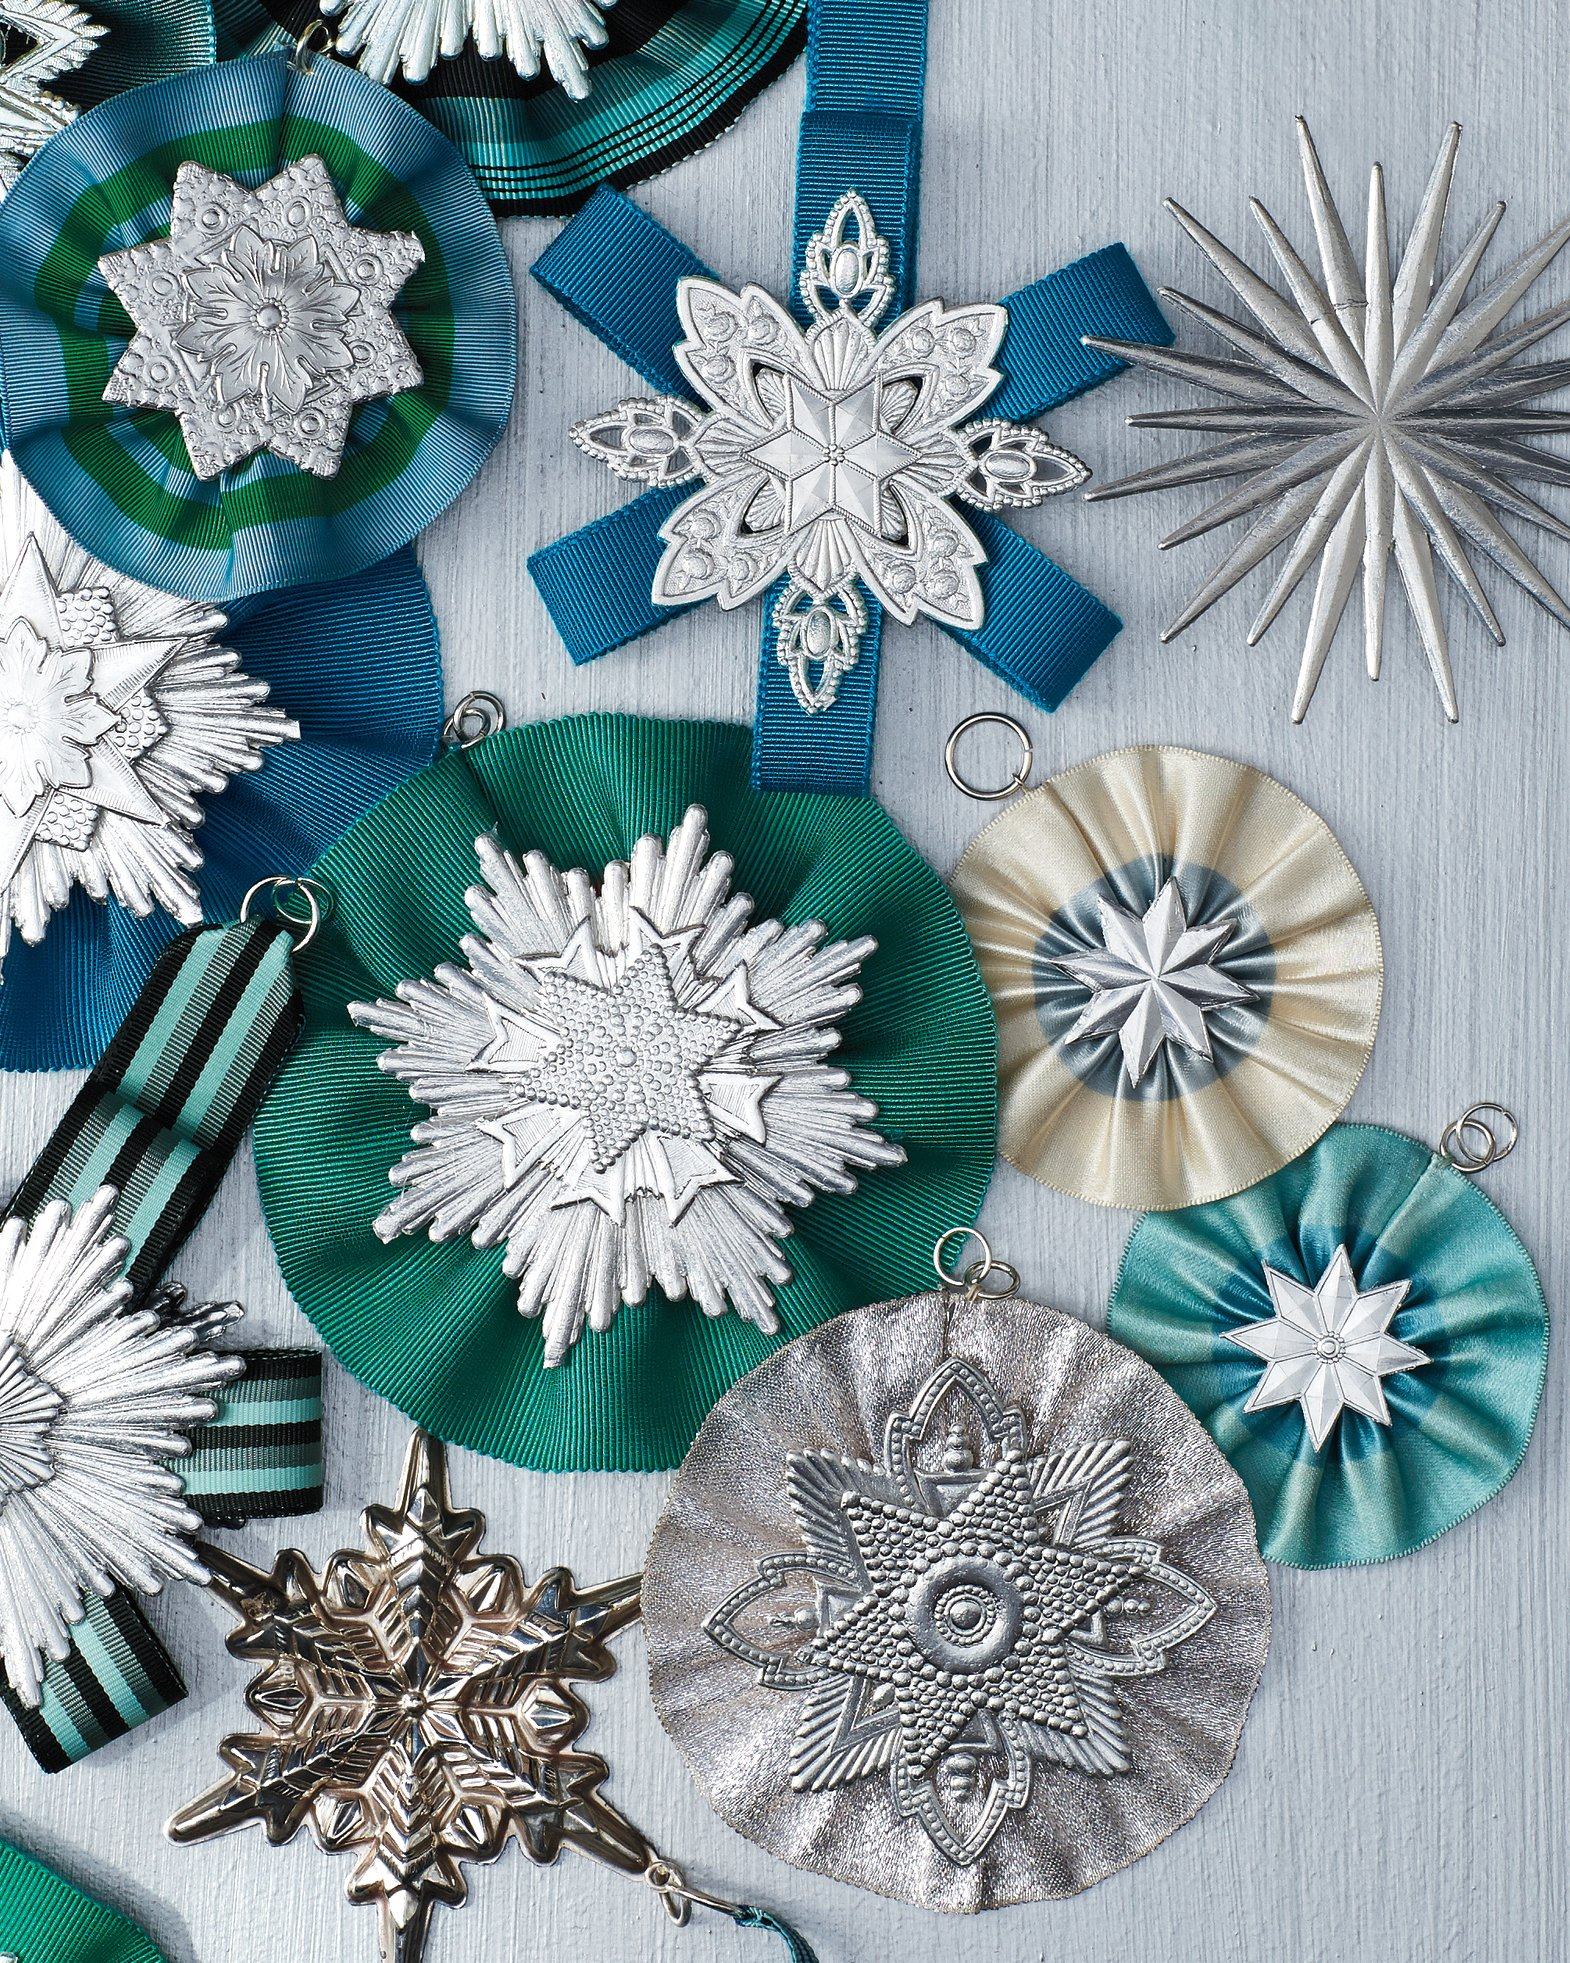 24 of Our Most Memorable DIY Christmas Ornaments.